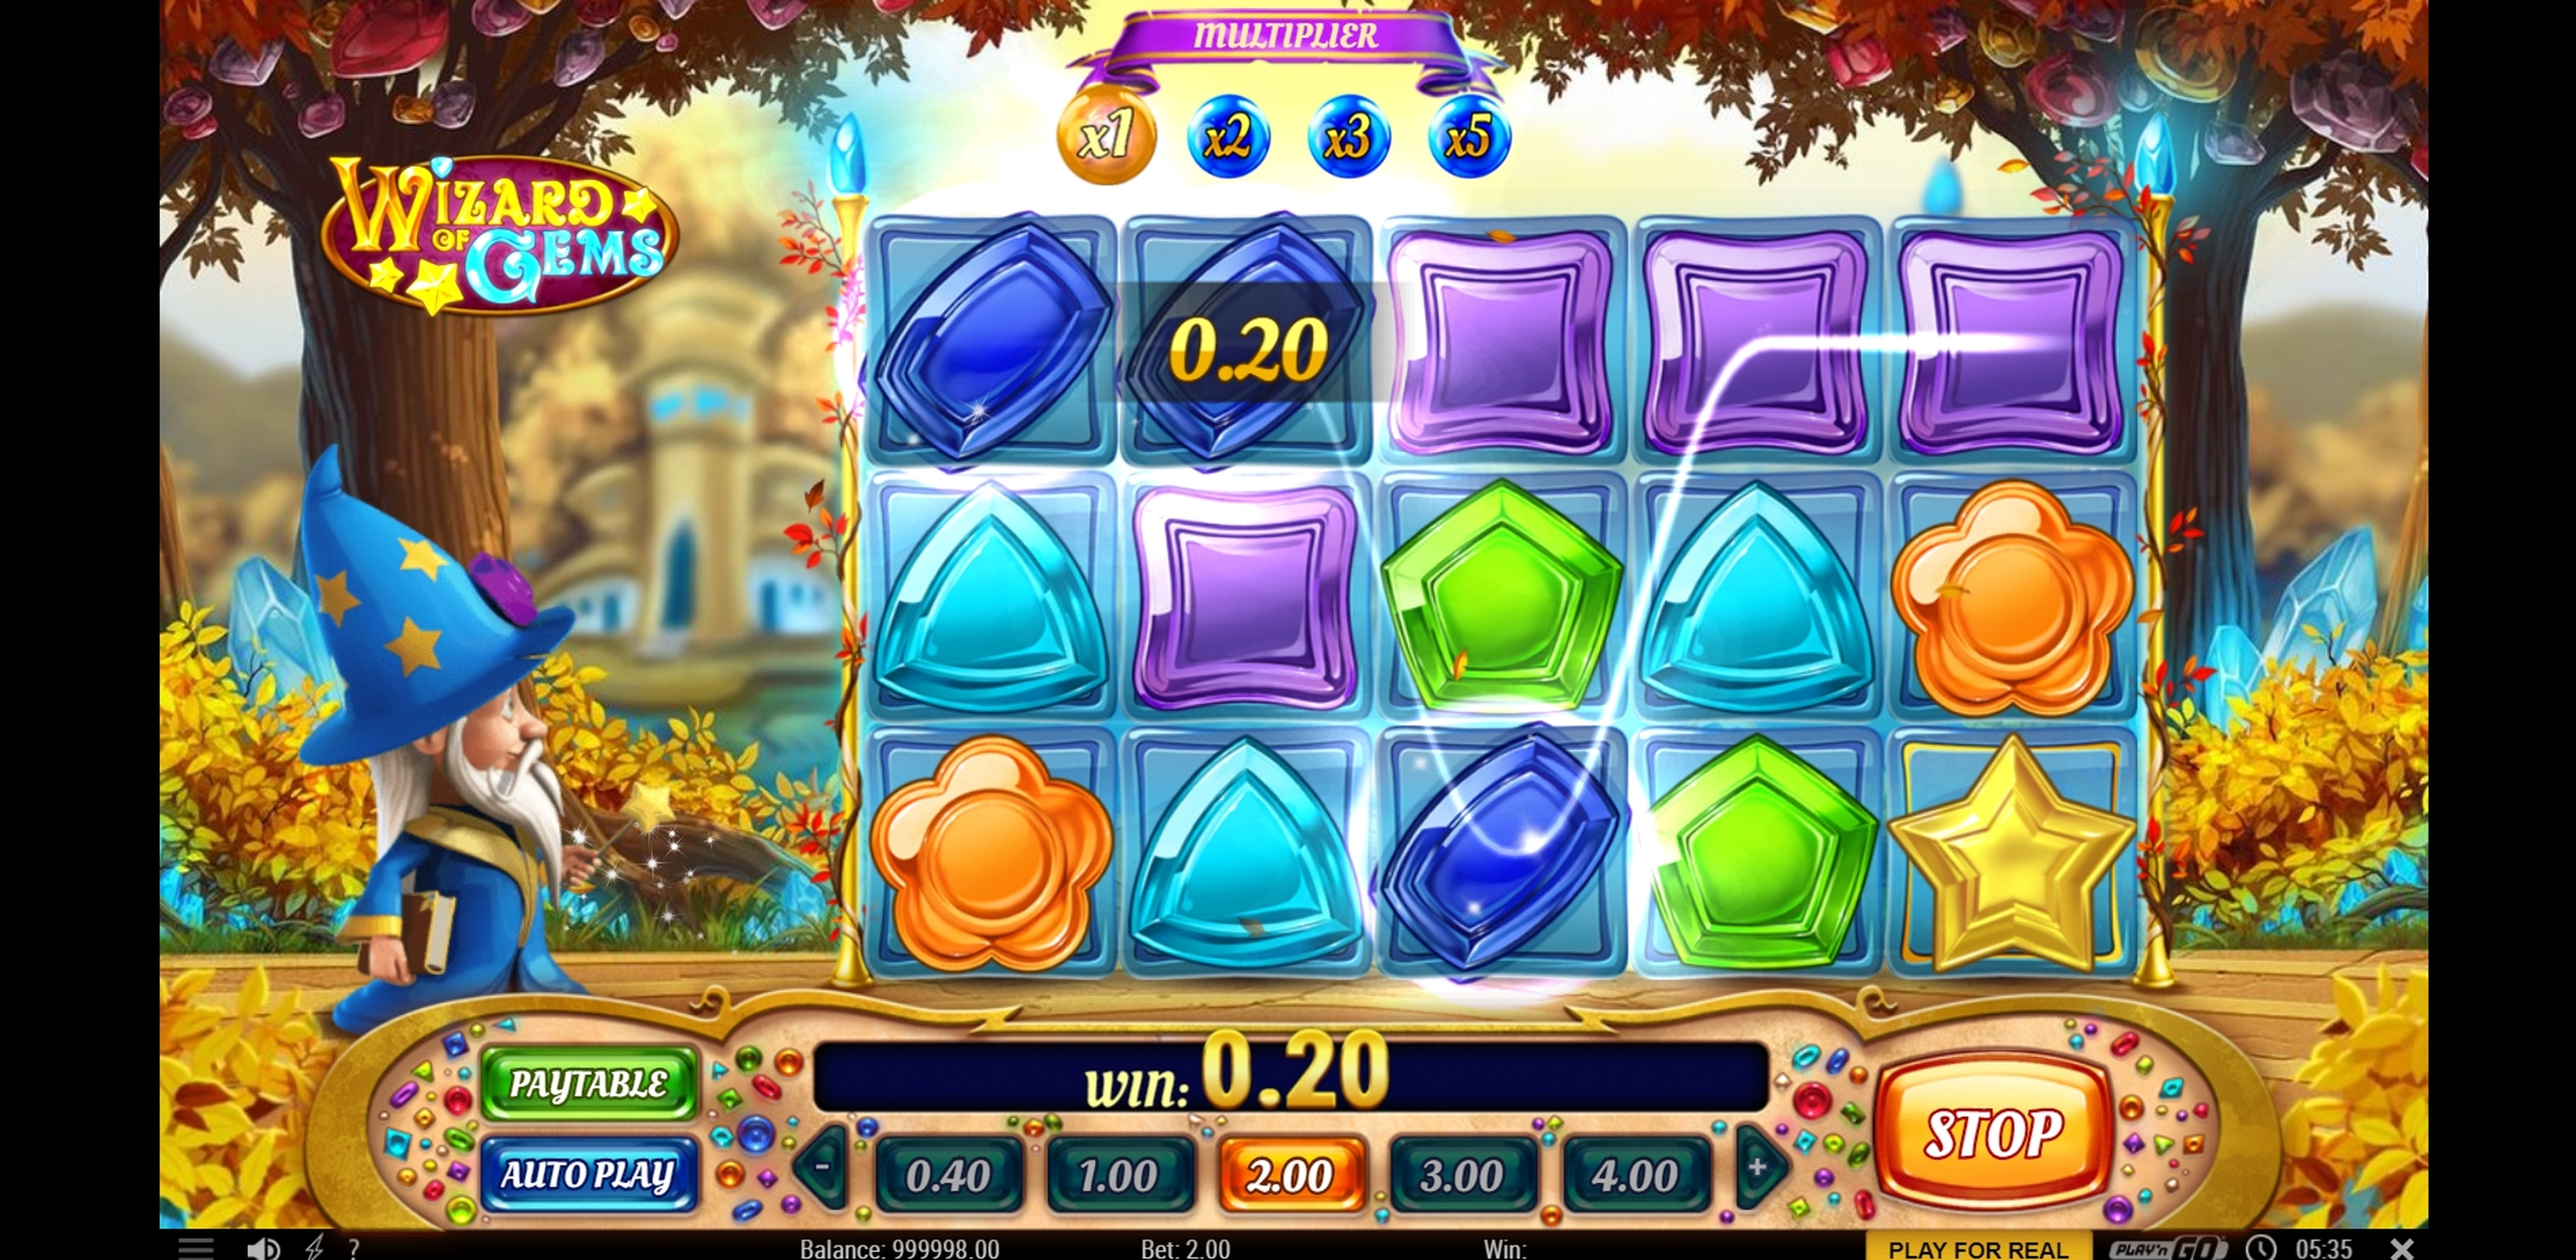 Win Money in Wizard of Gems Free Slot Game by Play'n Go